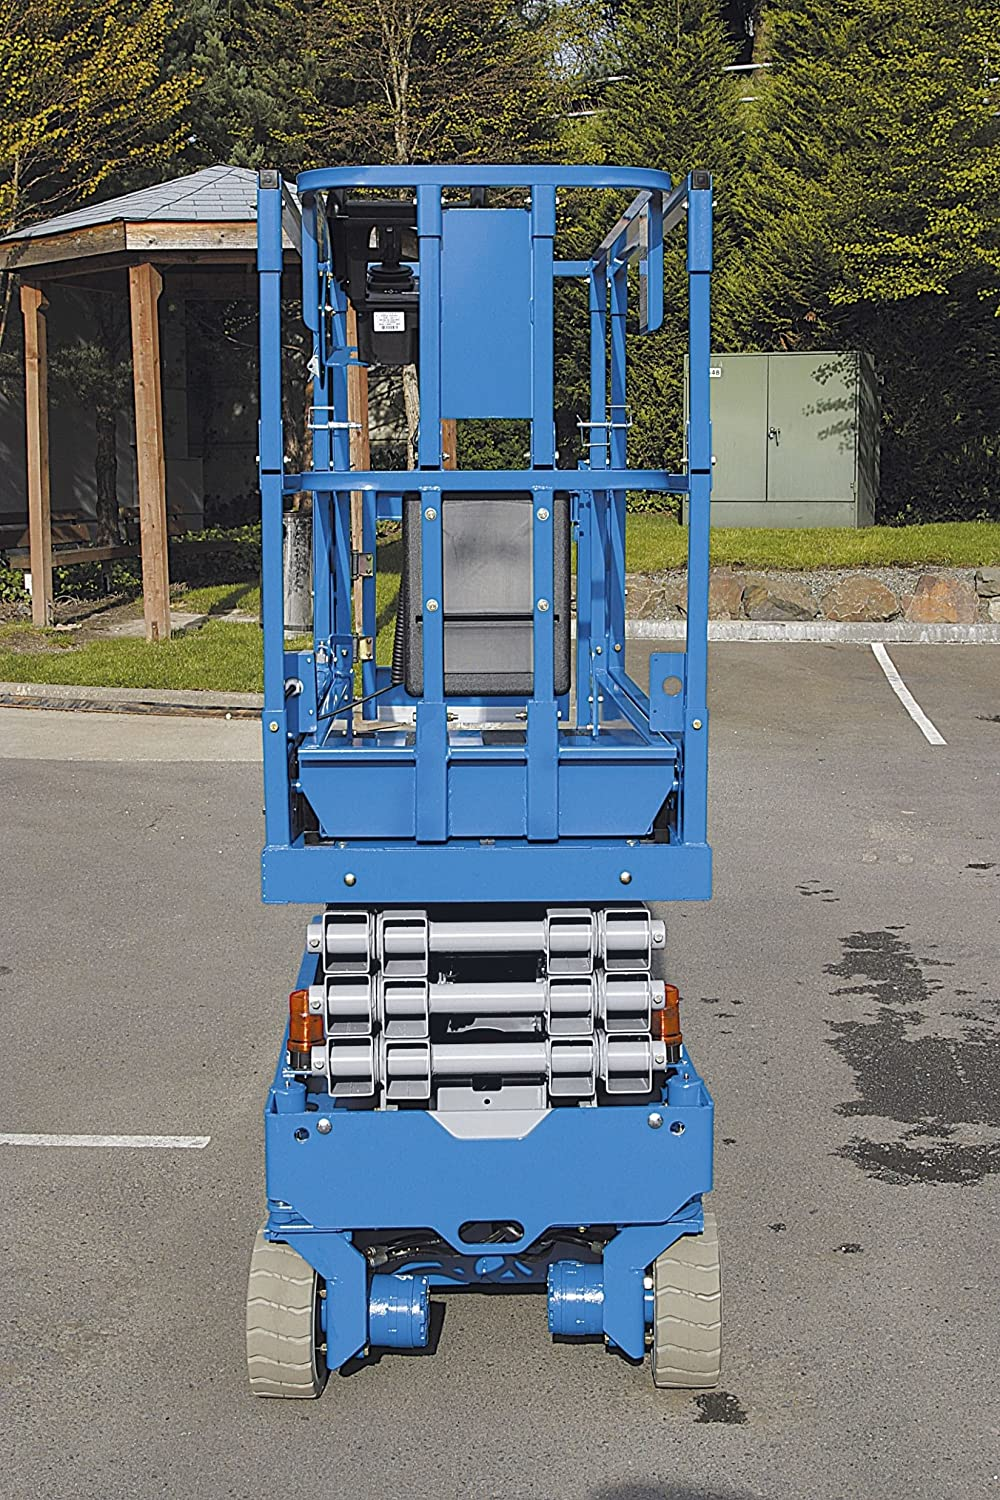 Genie Gs 1930 Self Propelled Electric Scissor Lift 500 Lbs Platform 3232 Wiring Diagram Load Capacity 19 Height Trucks Industrial Scientific